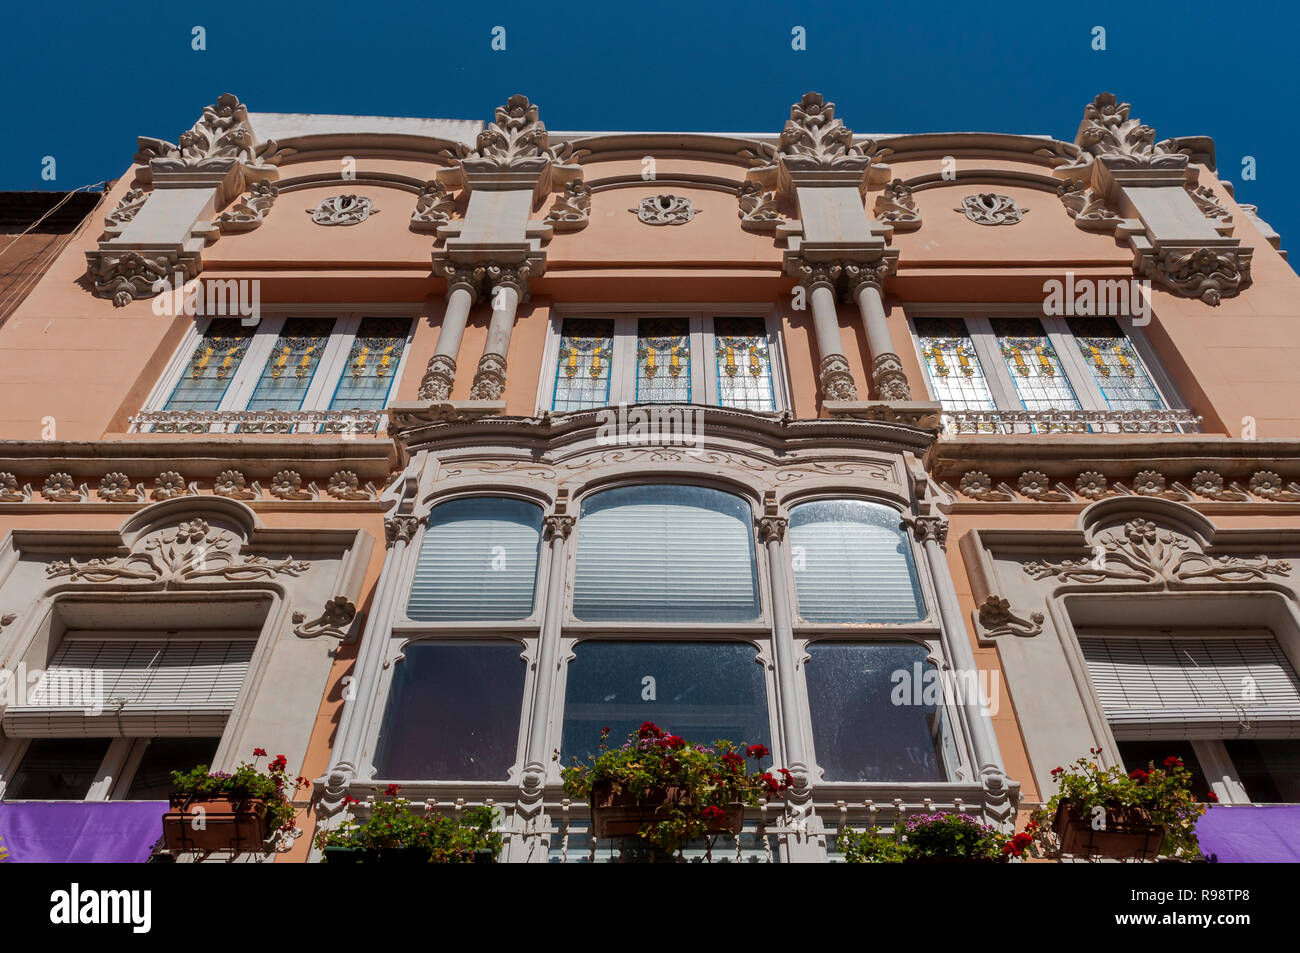 CARTAGENA, SPAIN – APRIL 12, 2017: Facade of the Clares House. It was designed by the architect Mario Spottorno in 1907 Stock Photo